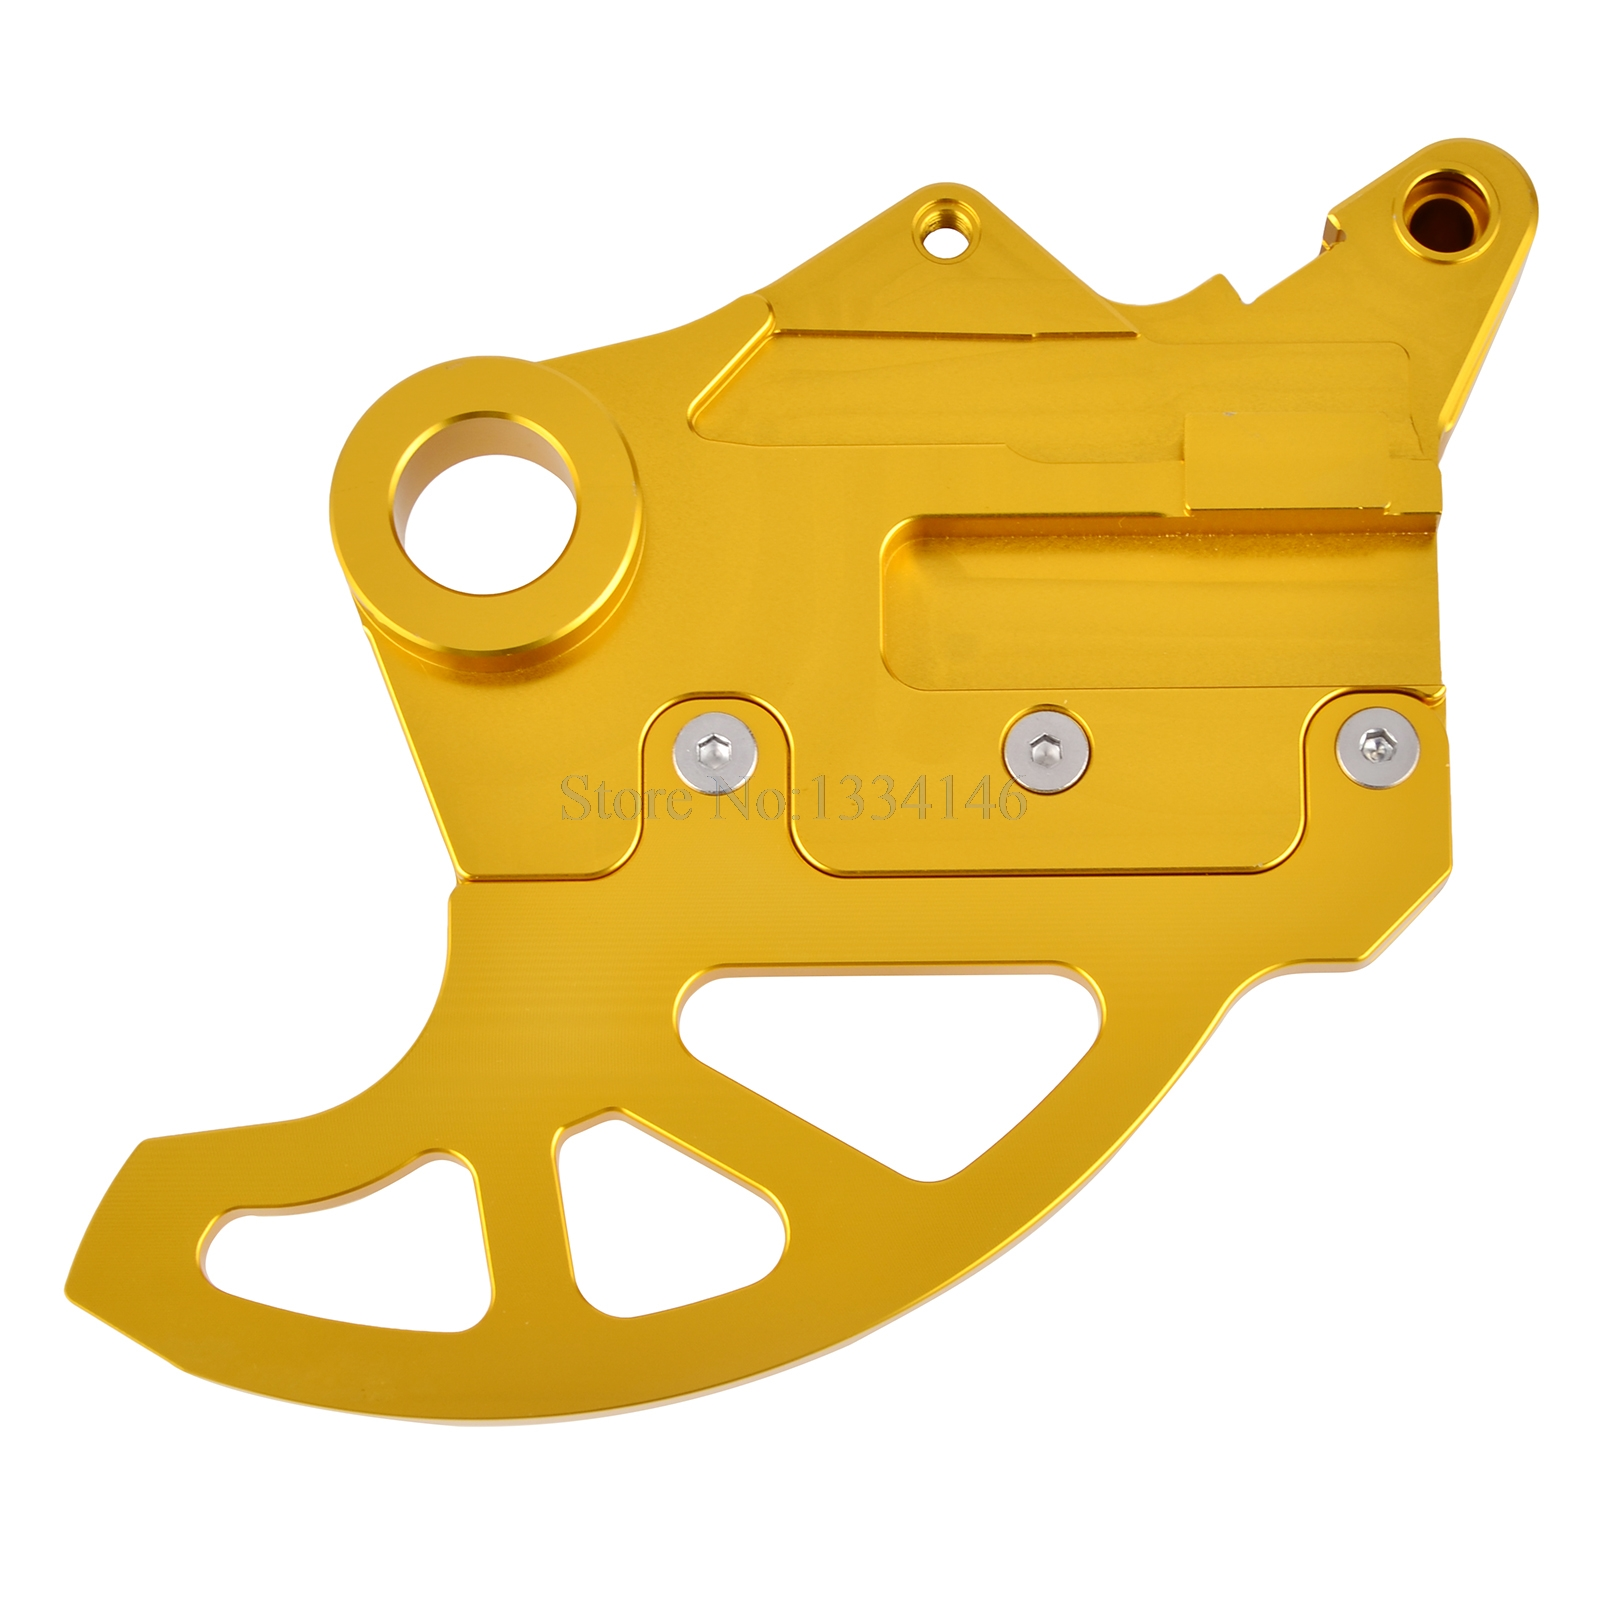 NICECNC For Suzuki RMX450Z RMZ250 RMZ450 Rear Brake Disc Guard Protector Cover CNC Brake Disc Guard For RMZ 250 450 2015 2016 цена